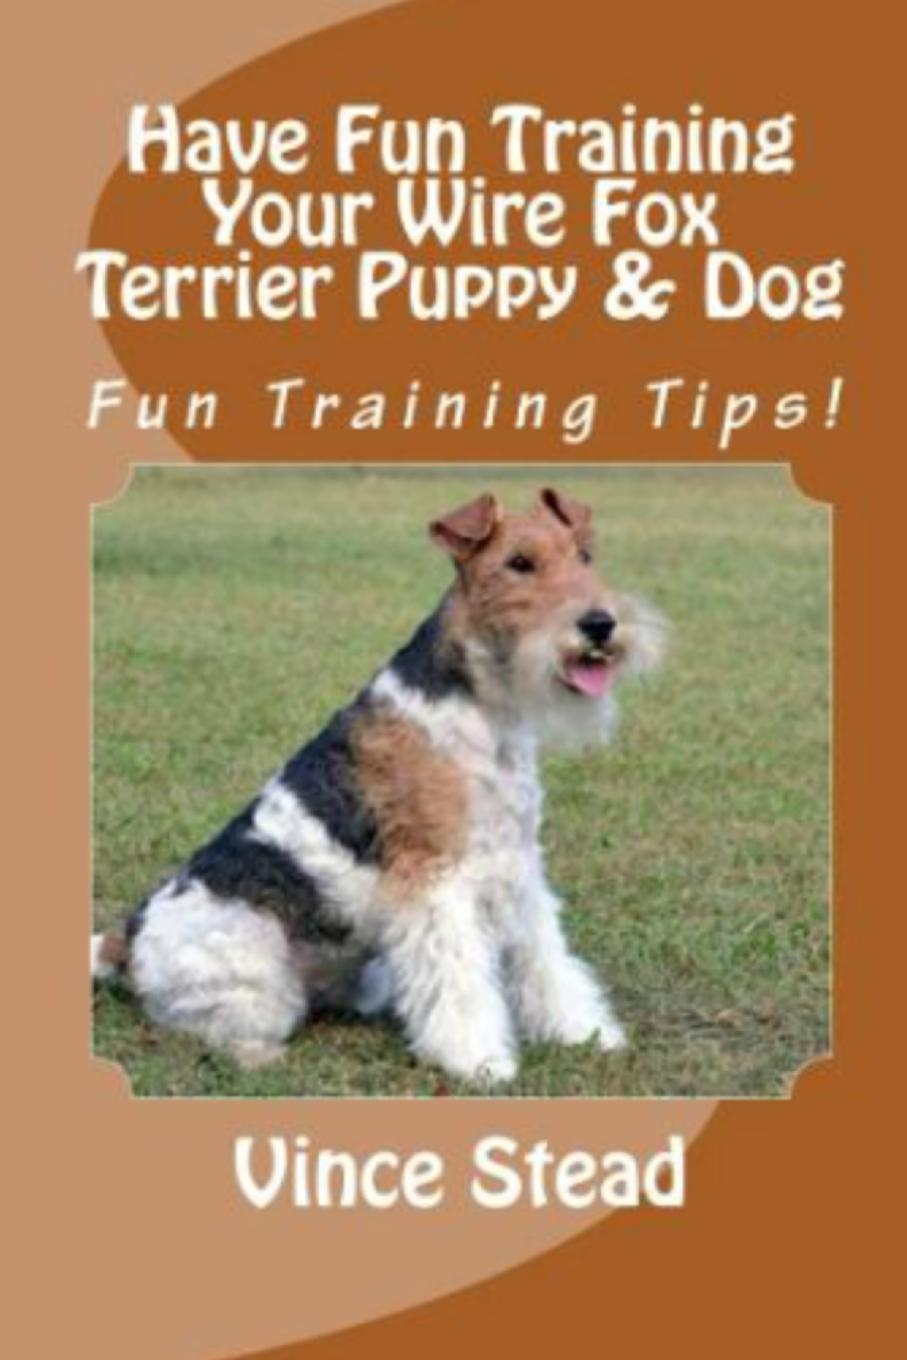 Vince Stead Have Fun Training Your Wire Fox Terrier Puppy . Dog vince stead old english sheepdog puppy dog understanding and training